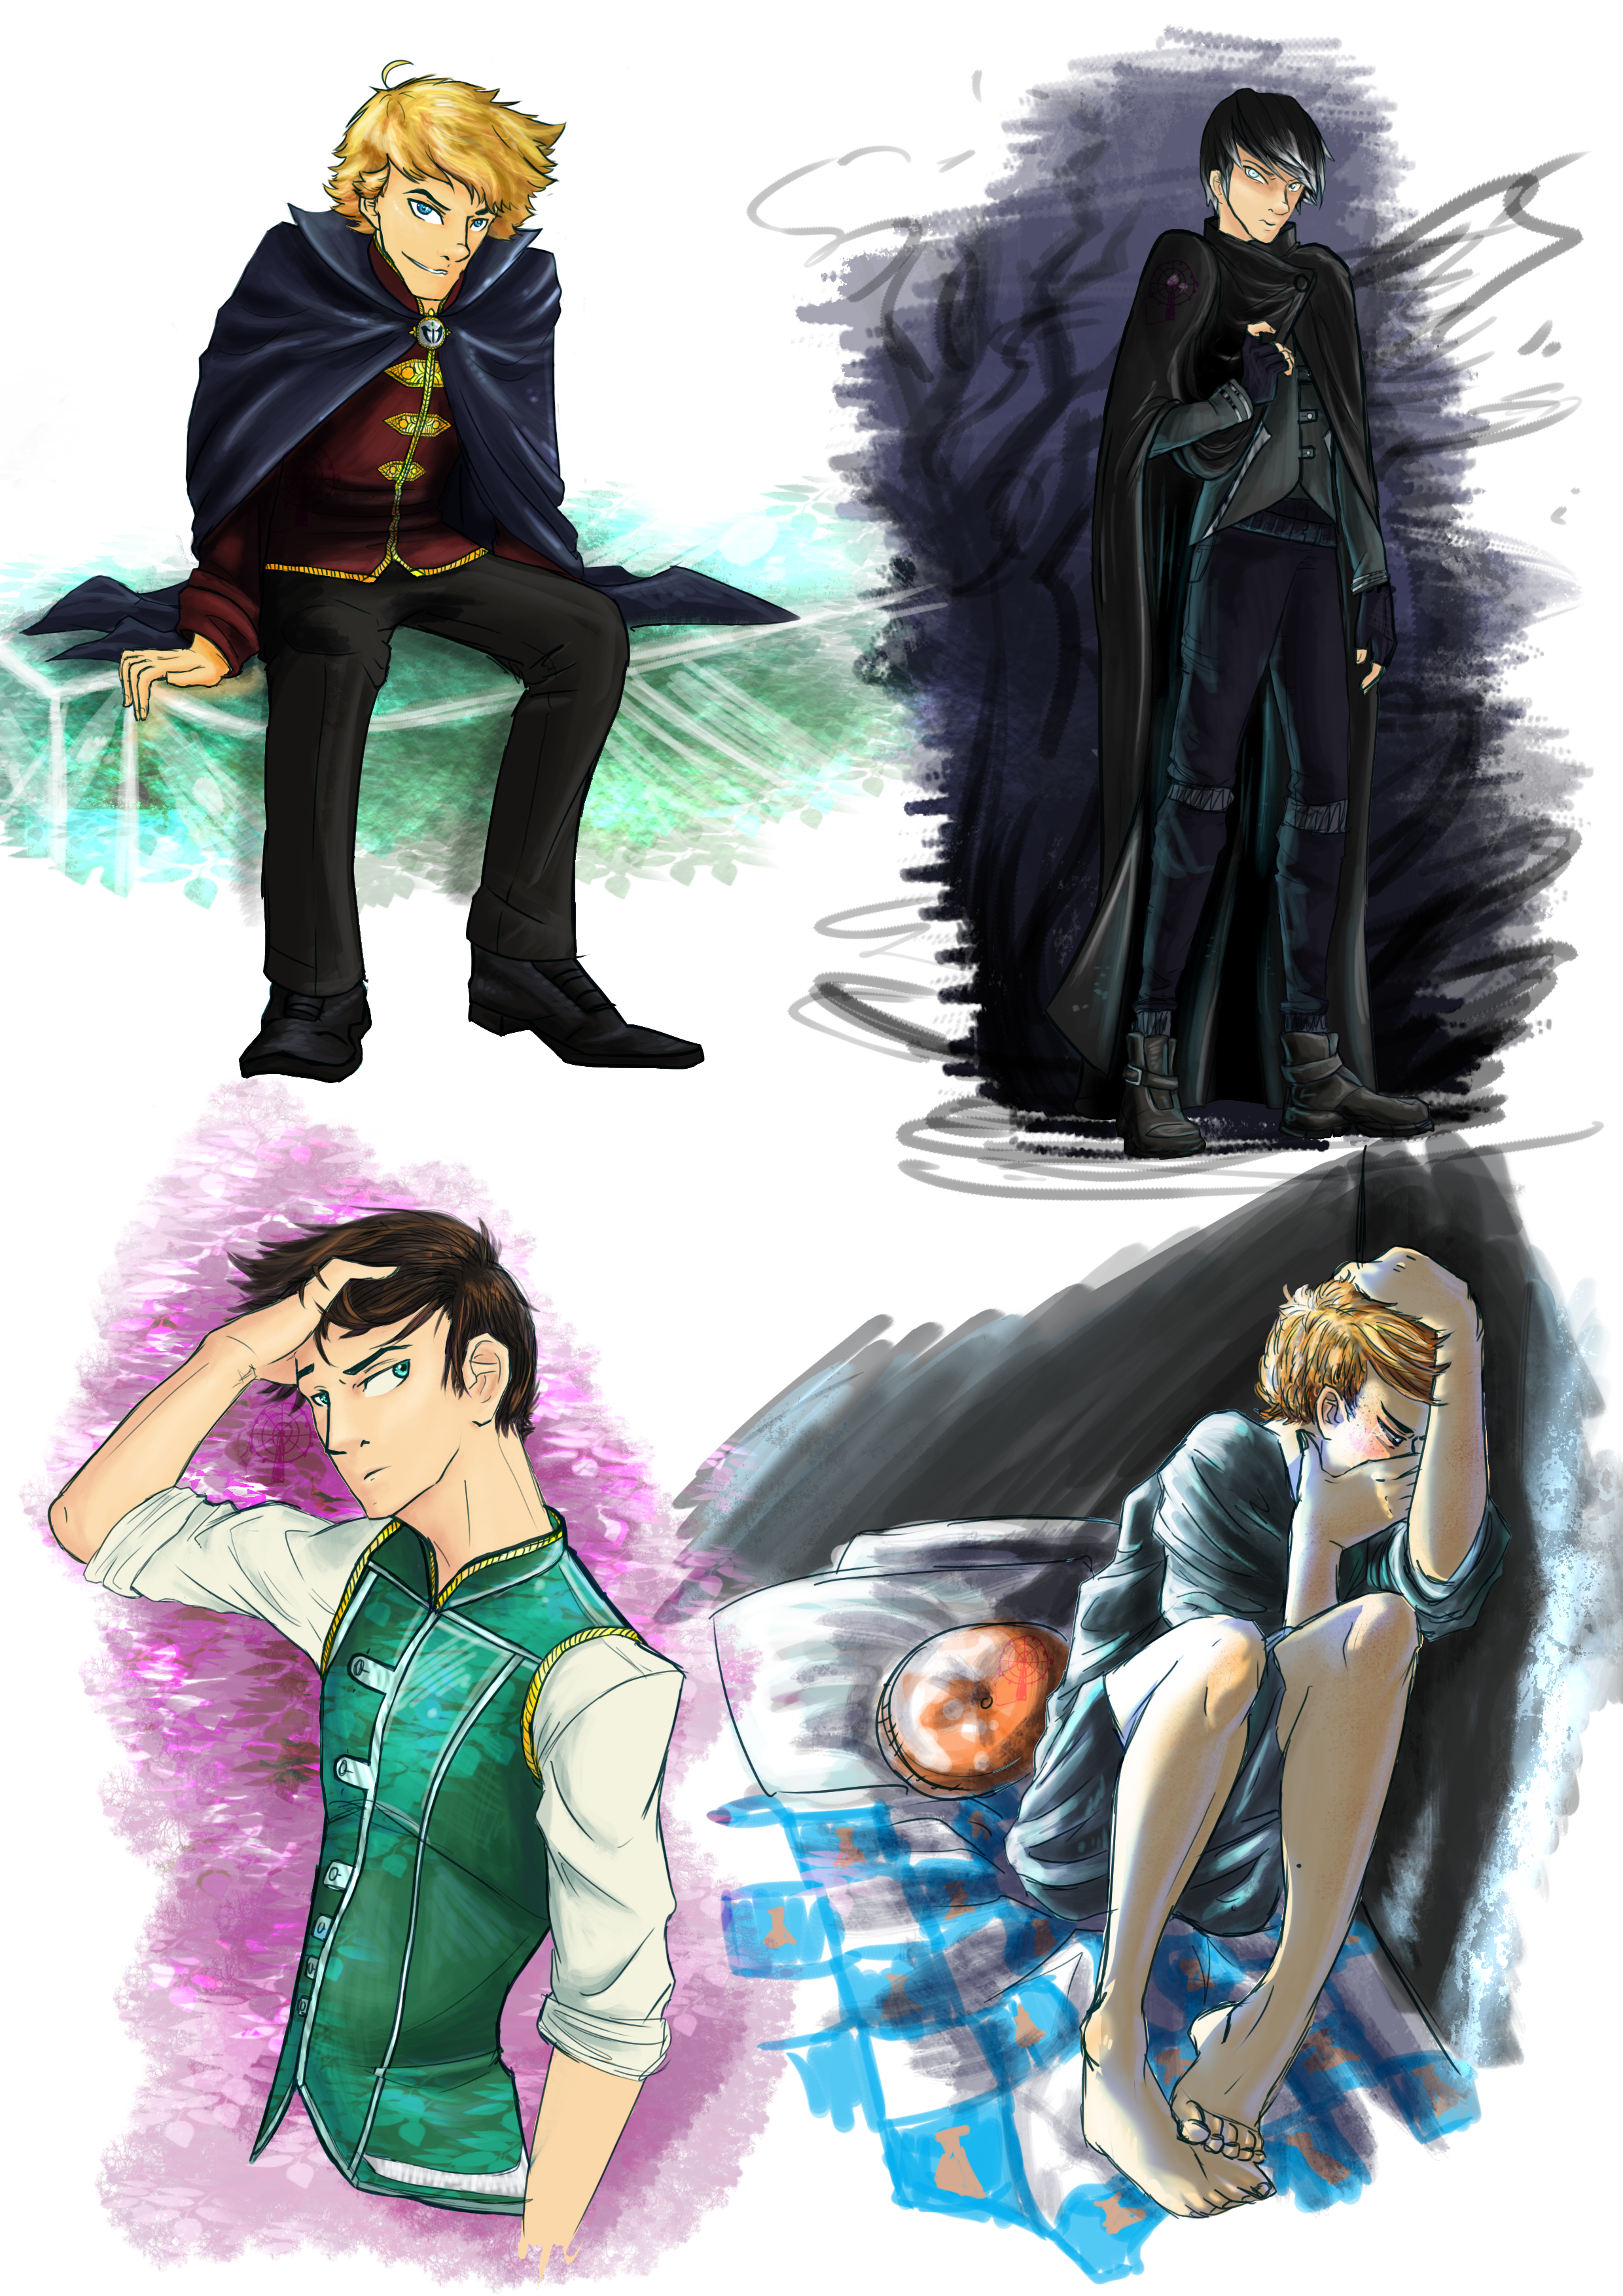 The Boys From The Keeper Of The Lost Cities Series In All Of Their Respective Dark Sides Lost City The Best Series Ever Best Series